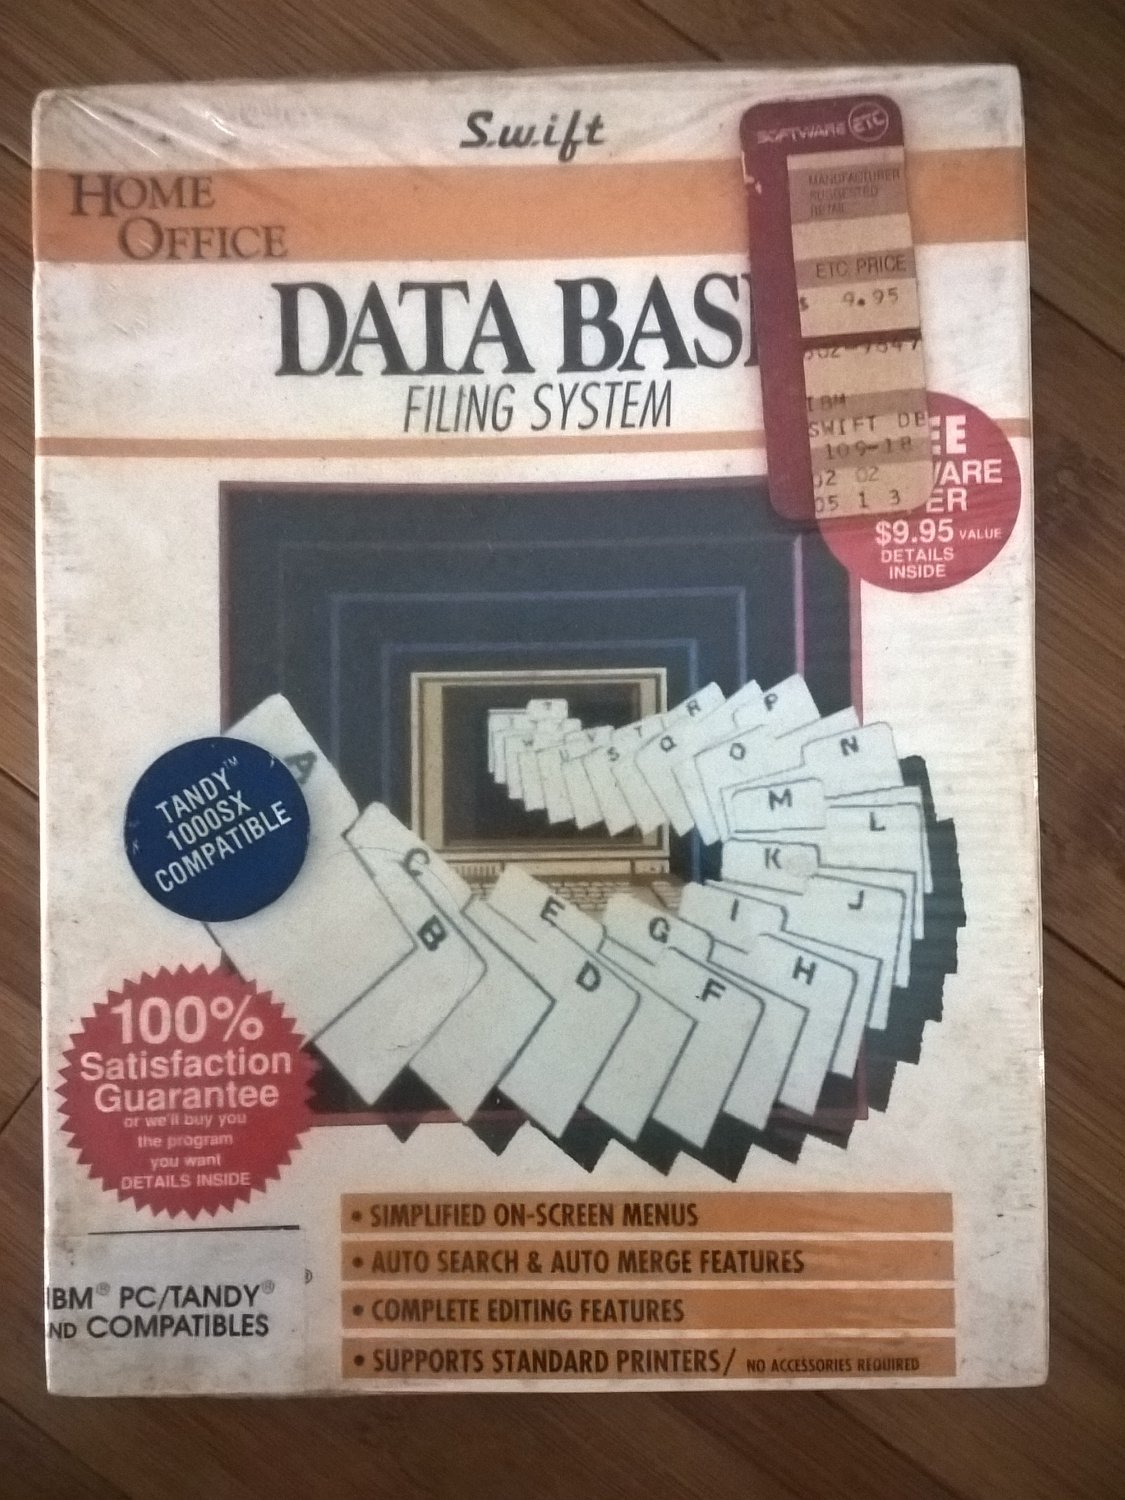 DataBase Filing System For IBM PC/Tandy & Compatibles, NEW FACTORY SEALED, Swift Cosmi